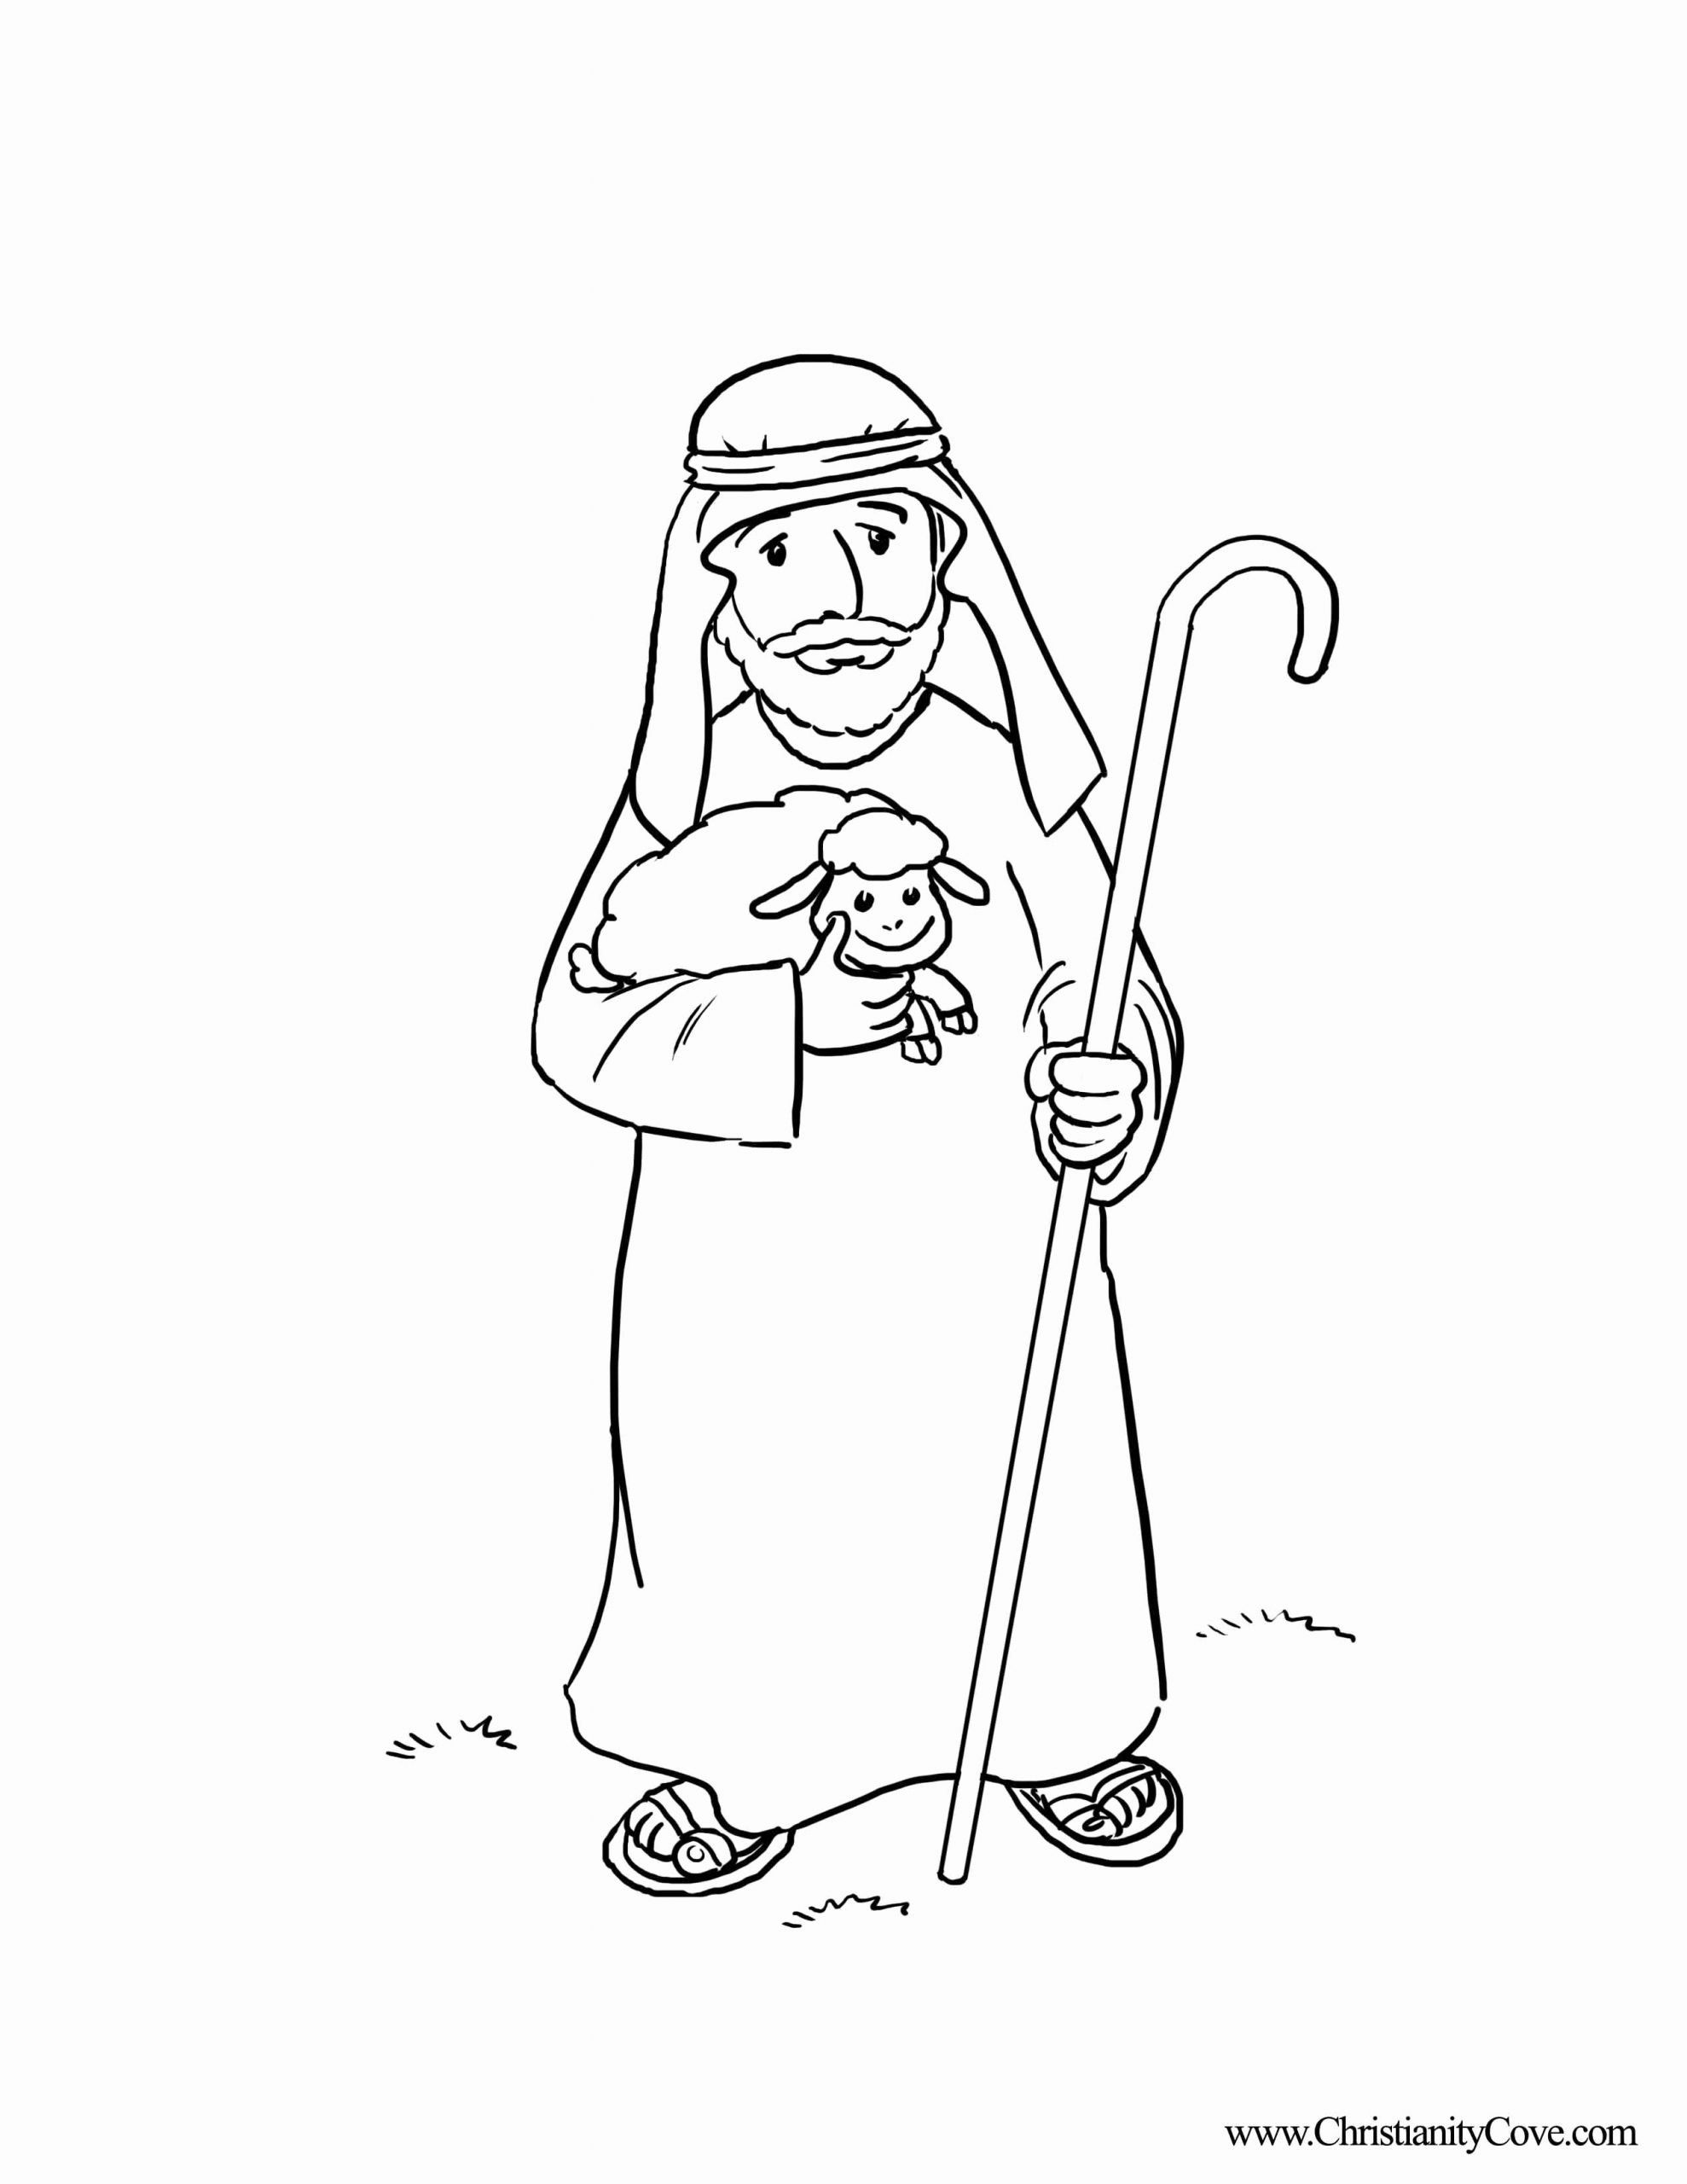 Good Shepherd Coloring Page Lovely White Shepherd Coloring Download White Shepherd Co Jesus Coloring Pages Coloring Pages Inspirational Nativity Coloring Pages [ 2560 x 1978 Pixel ]